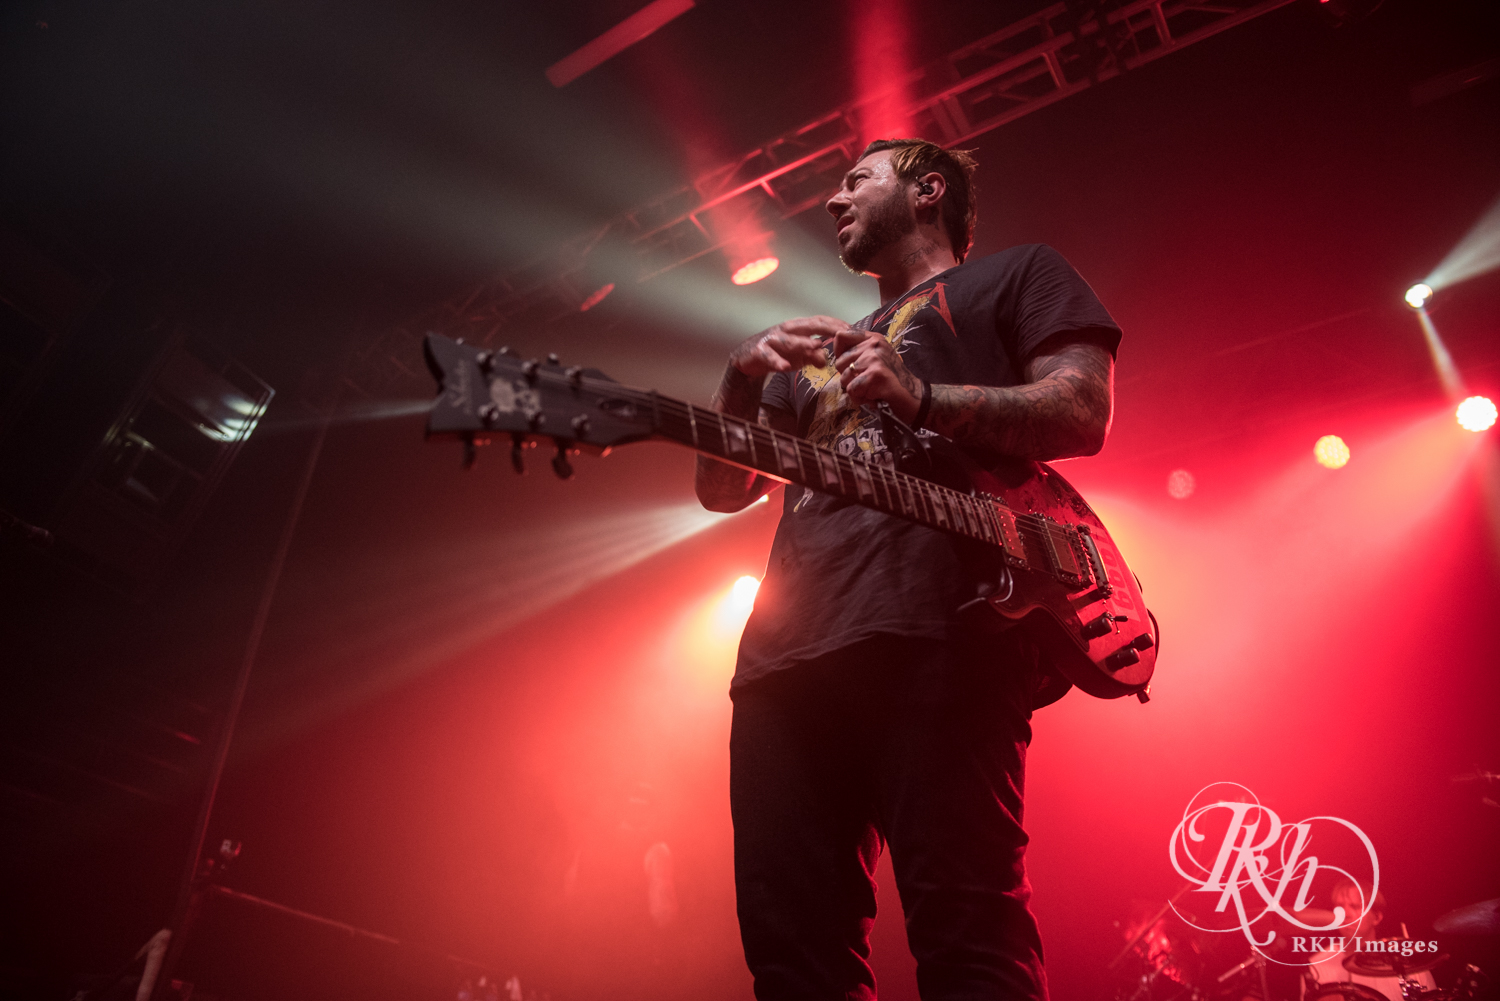 a7x rkh images (41 of 52).jpg